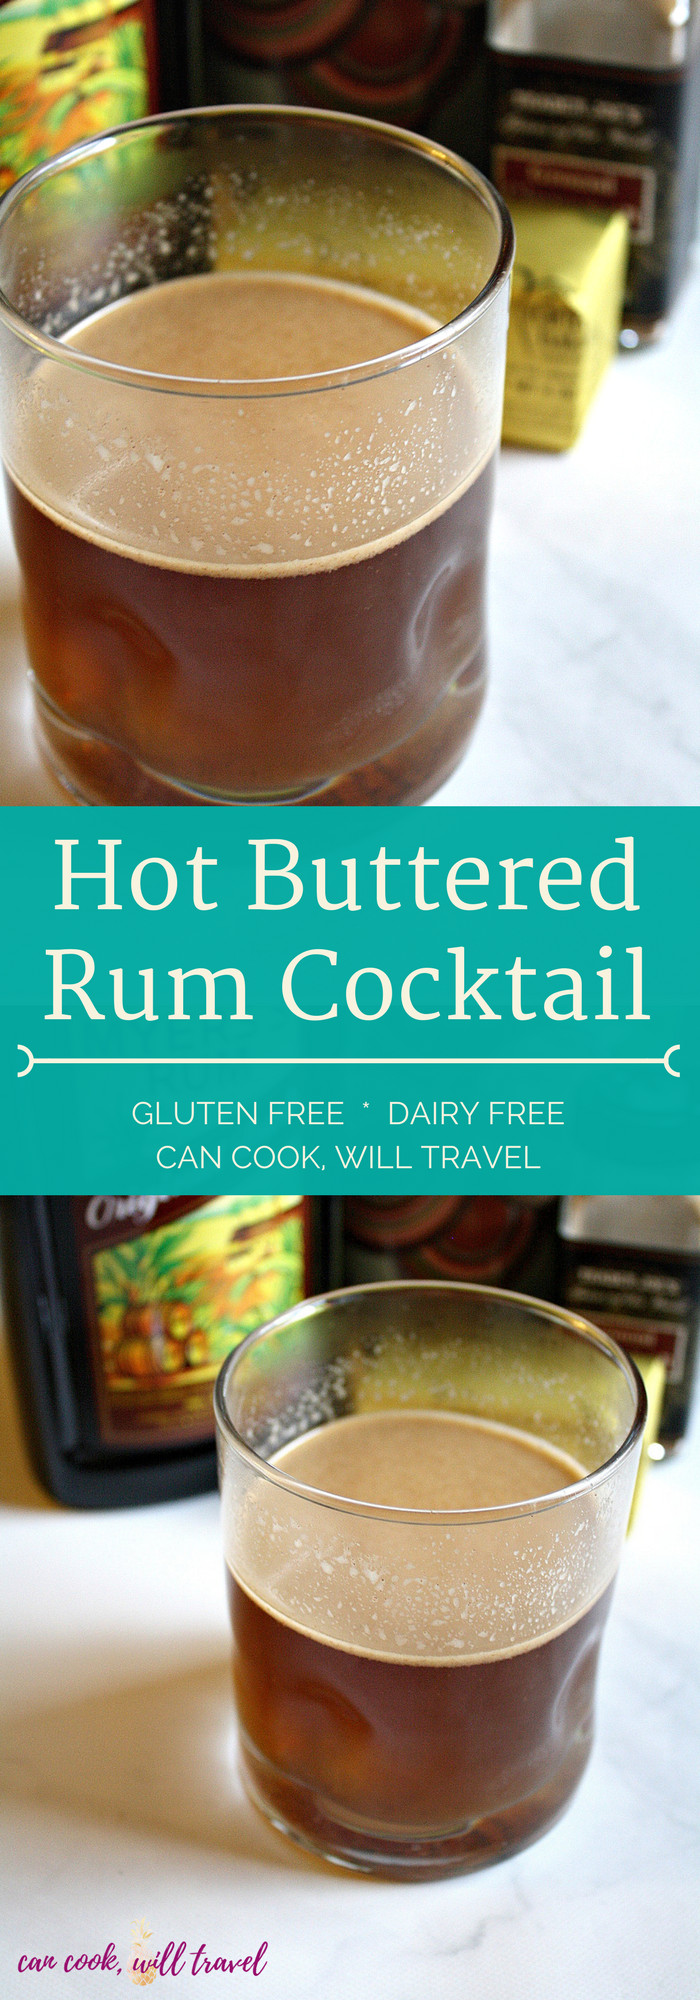 Warm Rum Drinks  Hot Buttered Rum Cocktail Will Warm You Up Can Cook